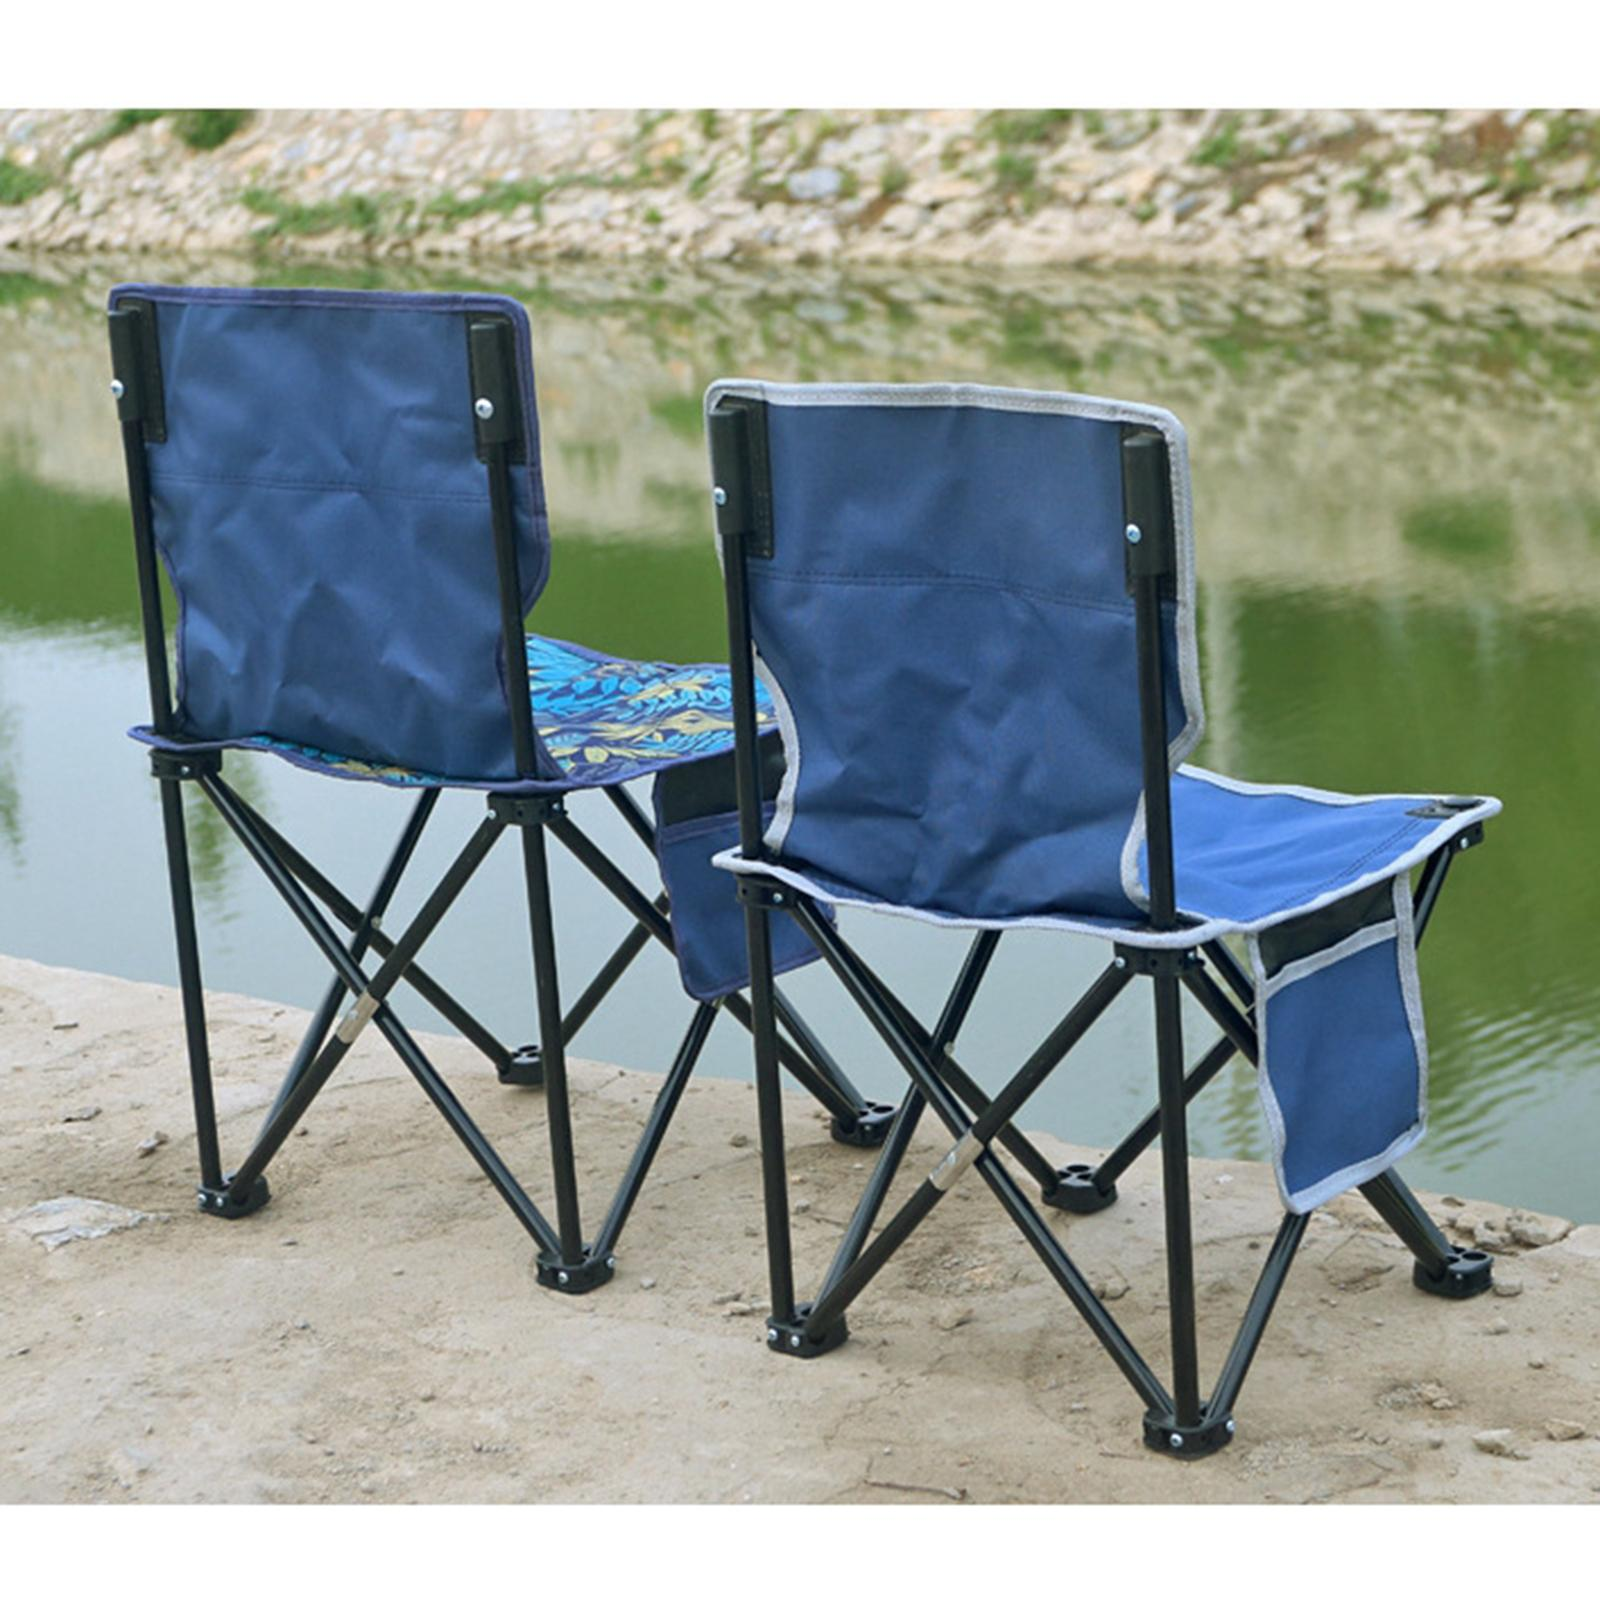 Folding Camping Chairs Lawn Chair Rest Lightweight Portable Easy Storage Wtih Ebay